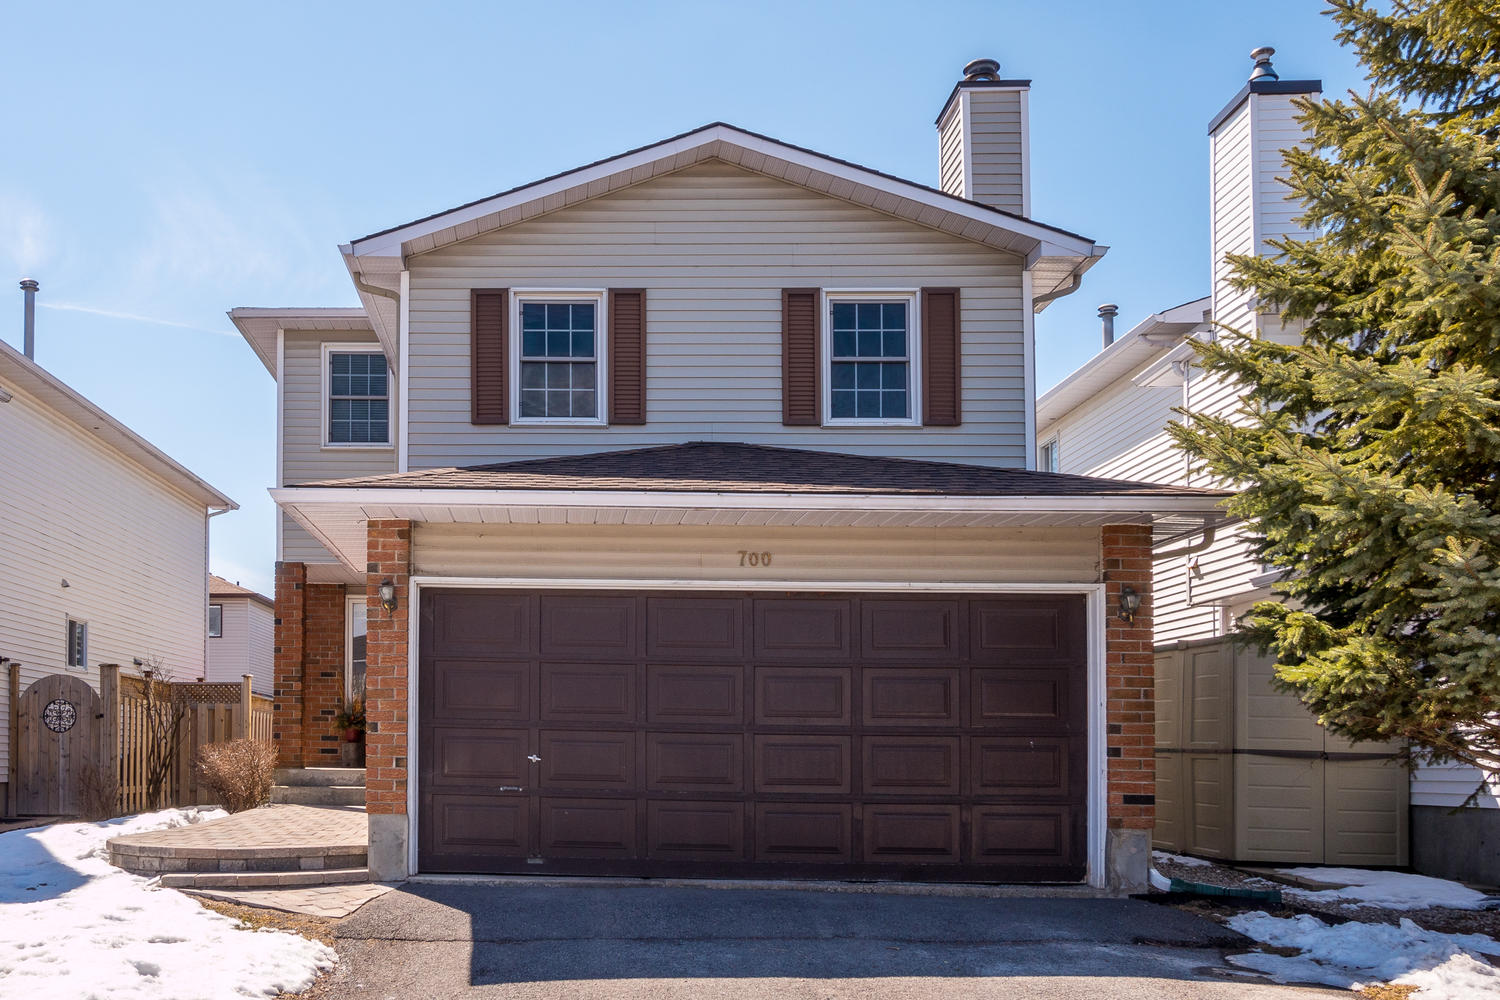 700 Levac Dr Ottawa ON K4A 2R1-large-001-30-Exterior Front